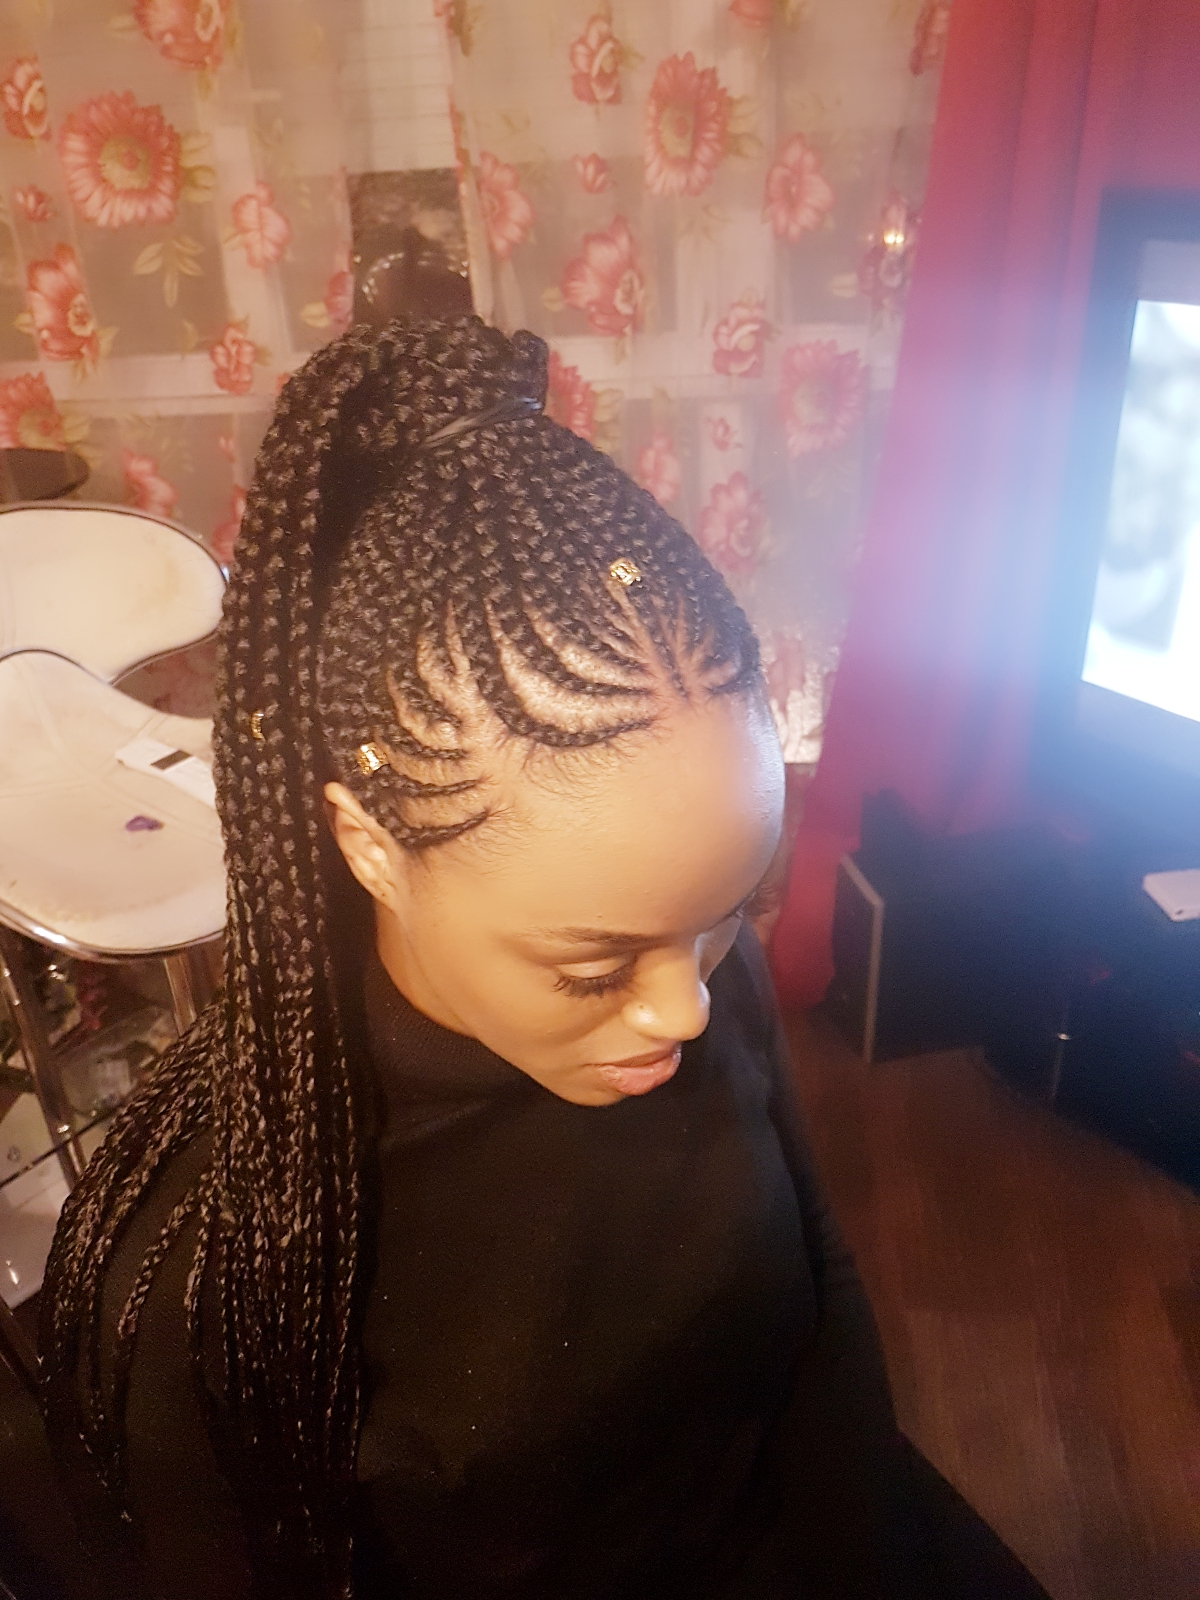 salon de coiffure afro tresse tresses box braids crochet braids vanilles tissages paris 75 77 78 91 92 93 94 95 GFLRCERV